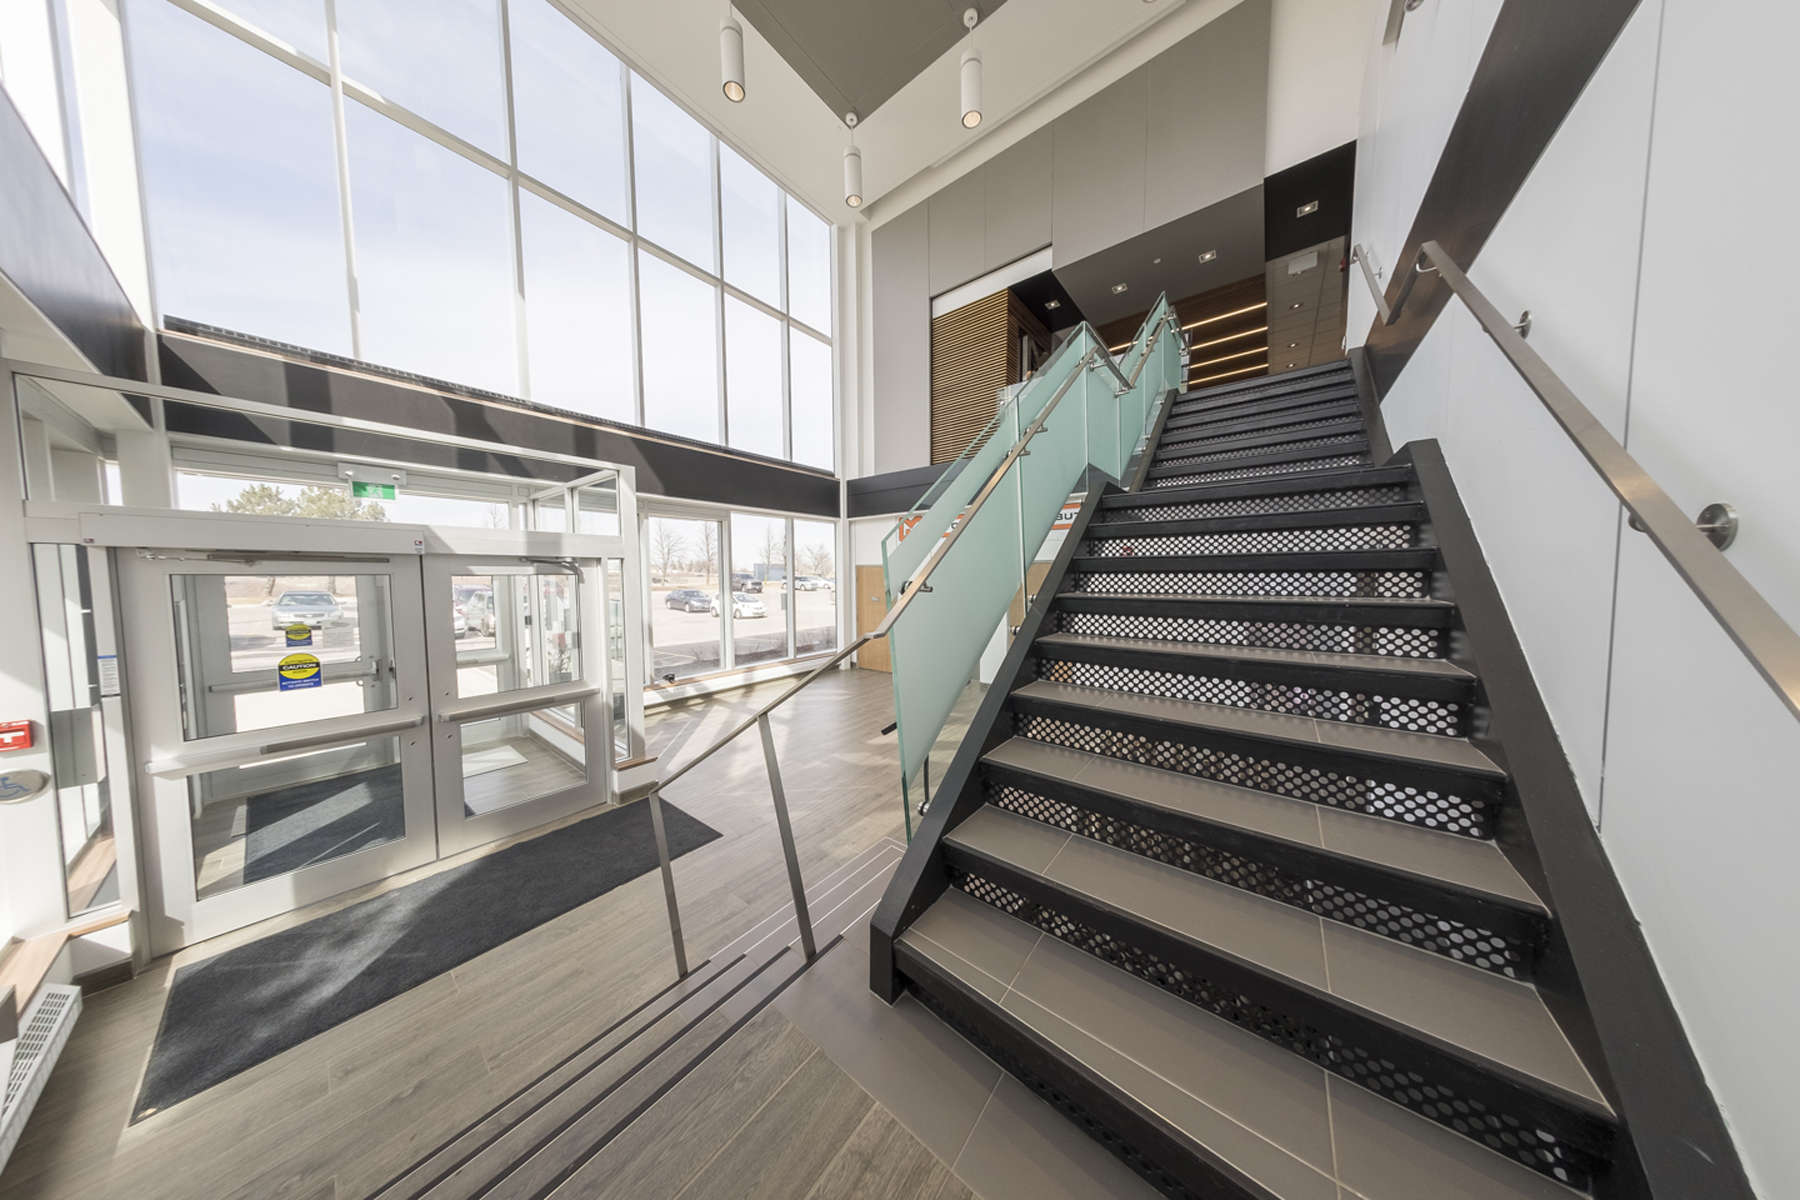 View of double height front entrance lobby with white pendant lighting from open steel staircase with frosted glass guard rail